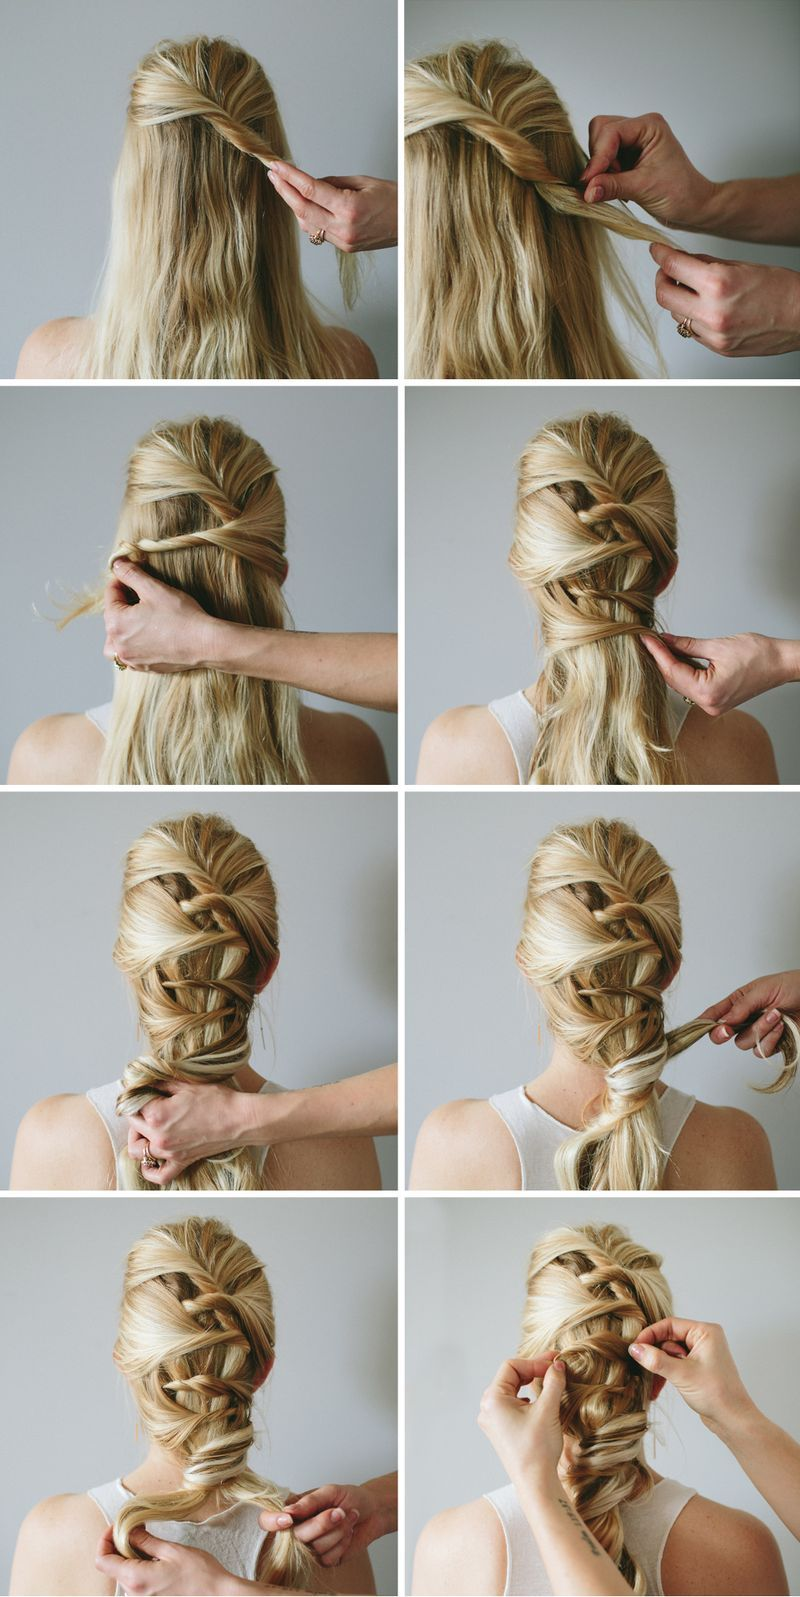 Romantic Twist Braid Hair Tutorial Looks So Much More Complicated Than It Actually Is Hair Styles Twist Braid Hairstyles Hair Tutorial